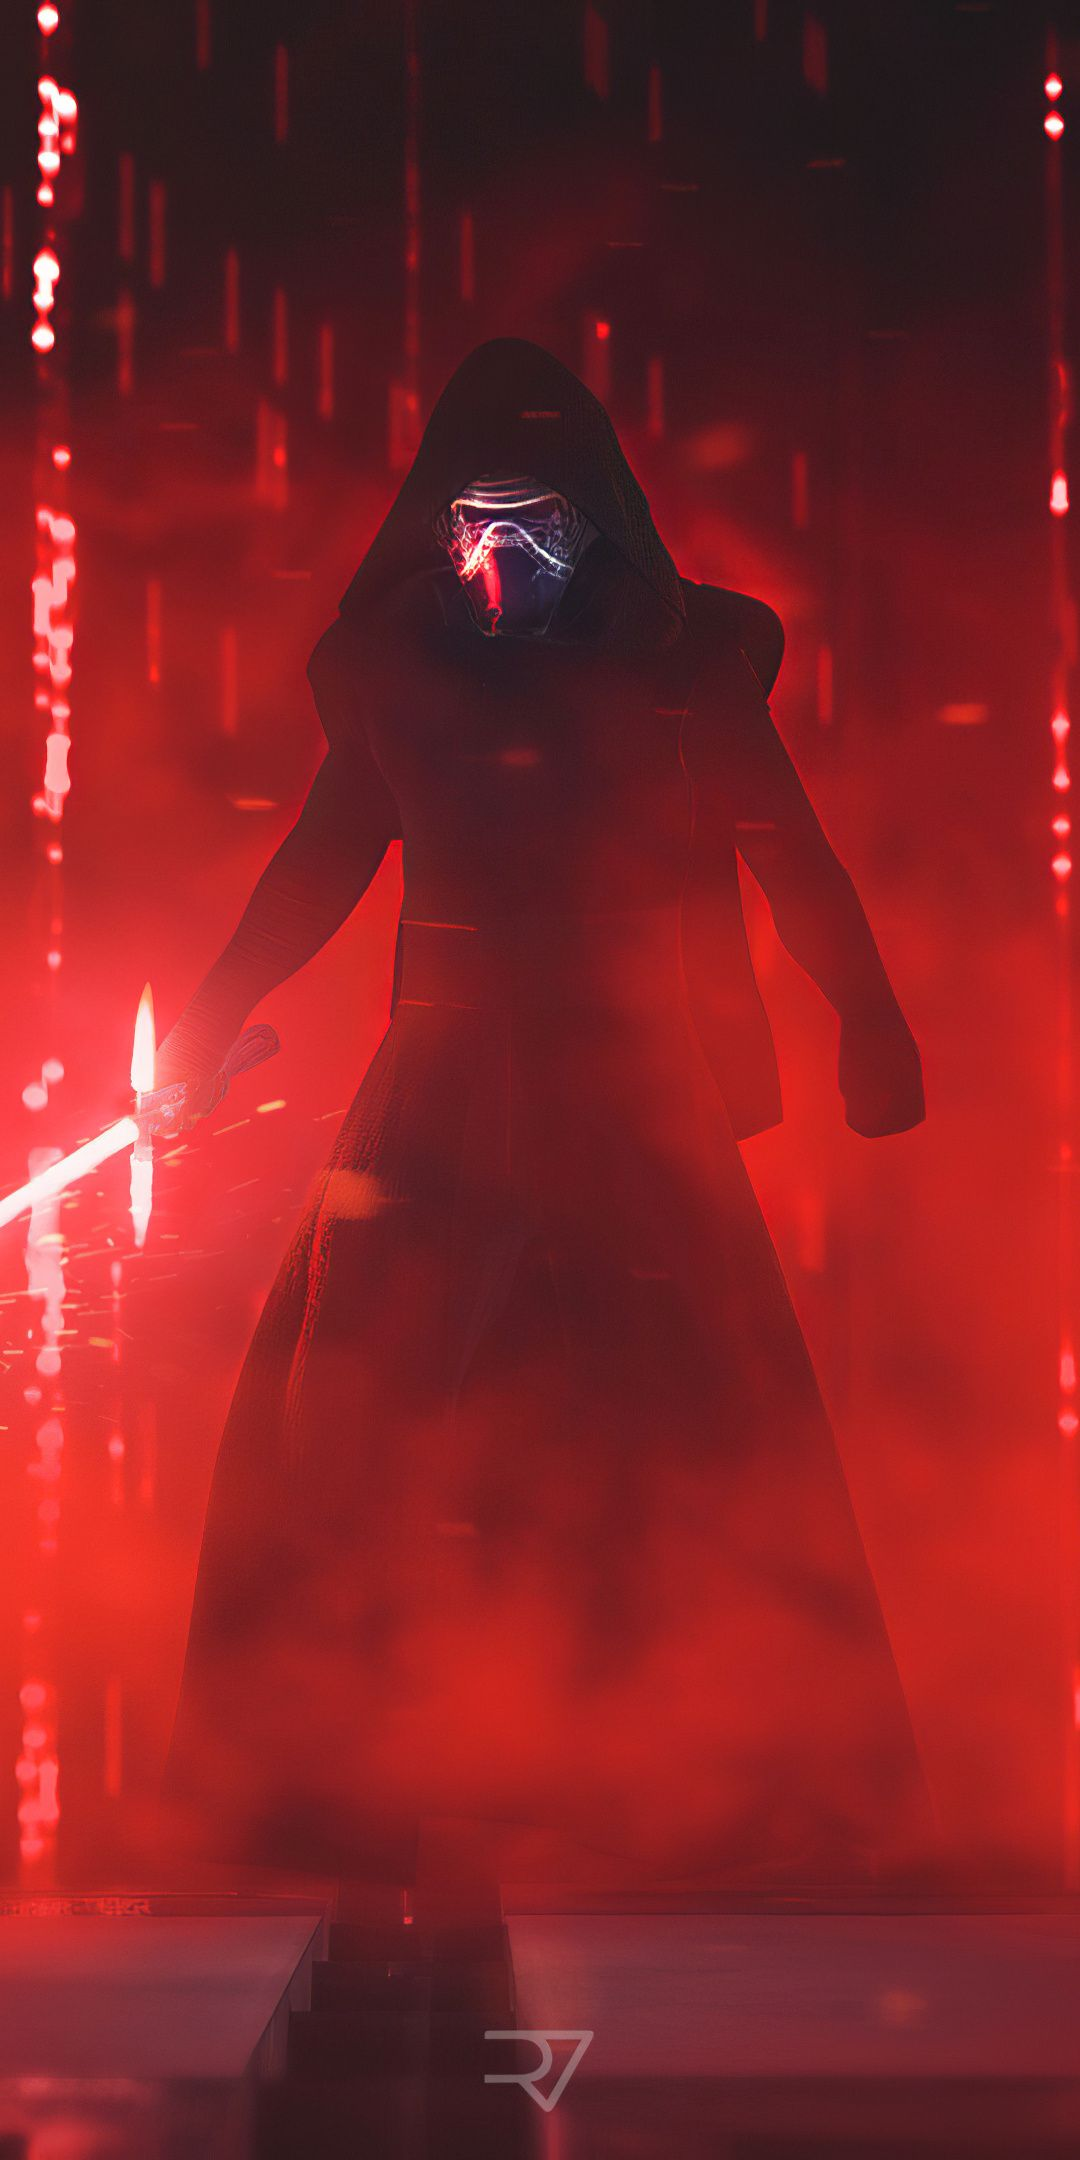 1080x2160 Kylo Ren Villain Star Wars Movie 2019 Wallpaper In 2020 Star Wars Background Star Wars Images Star Wars Wallpaper